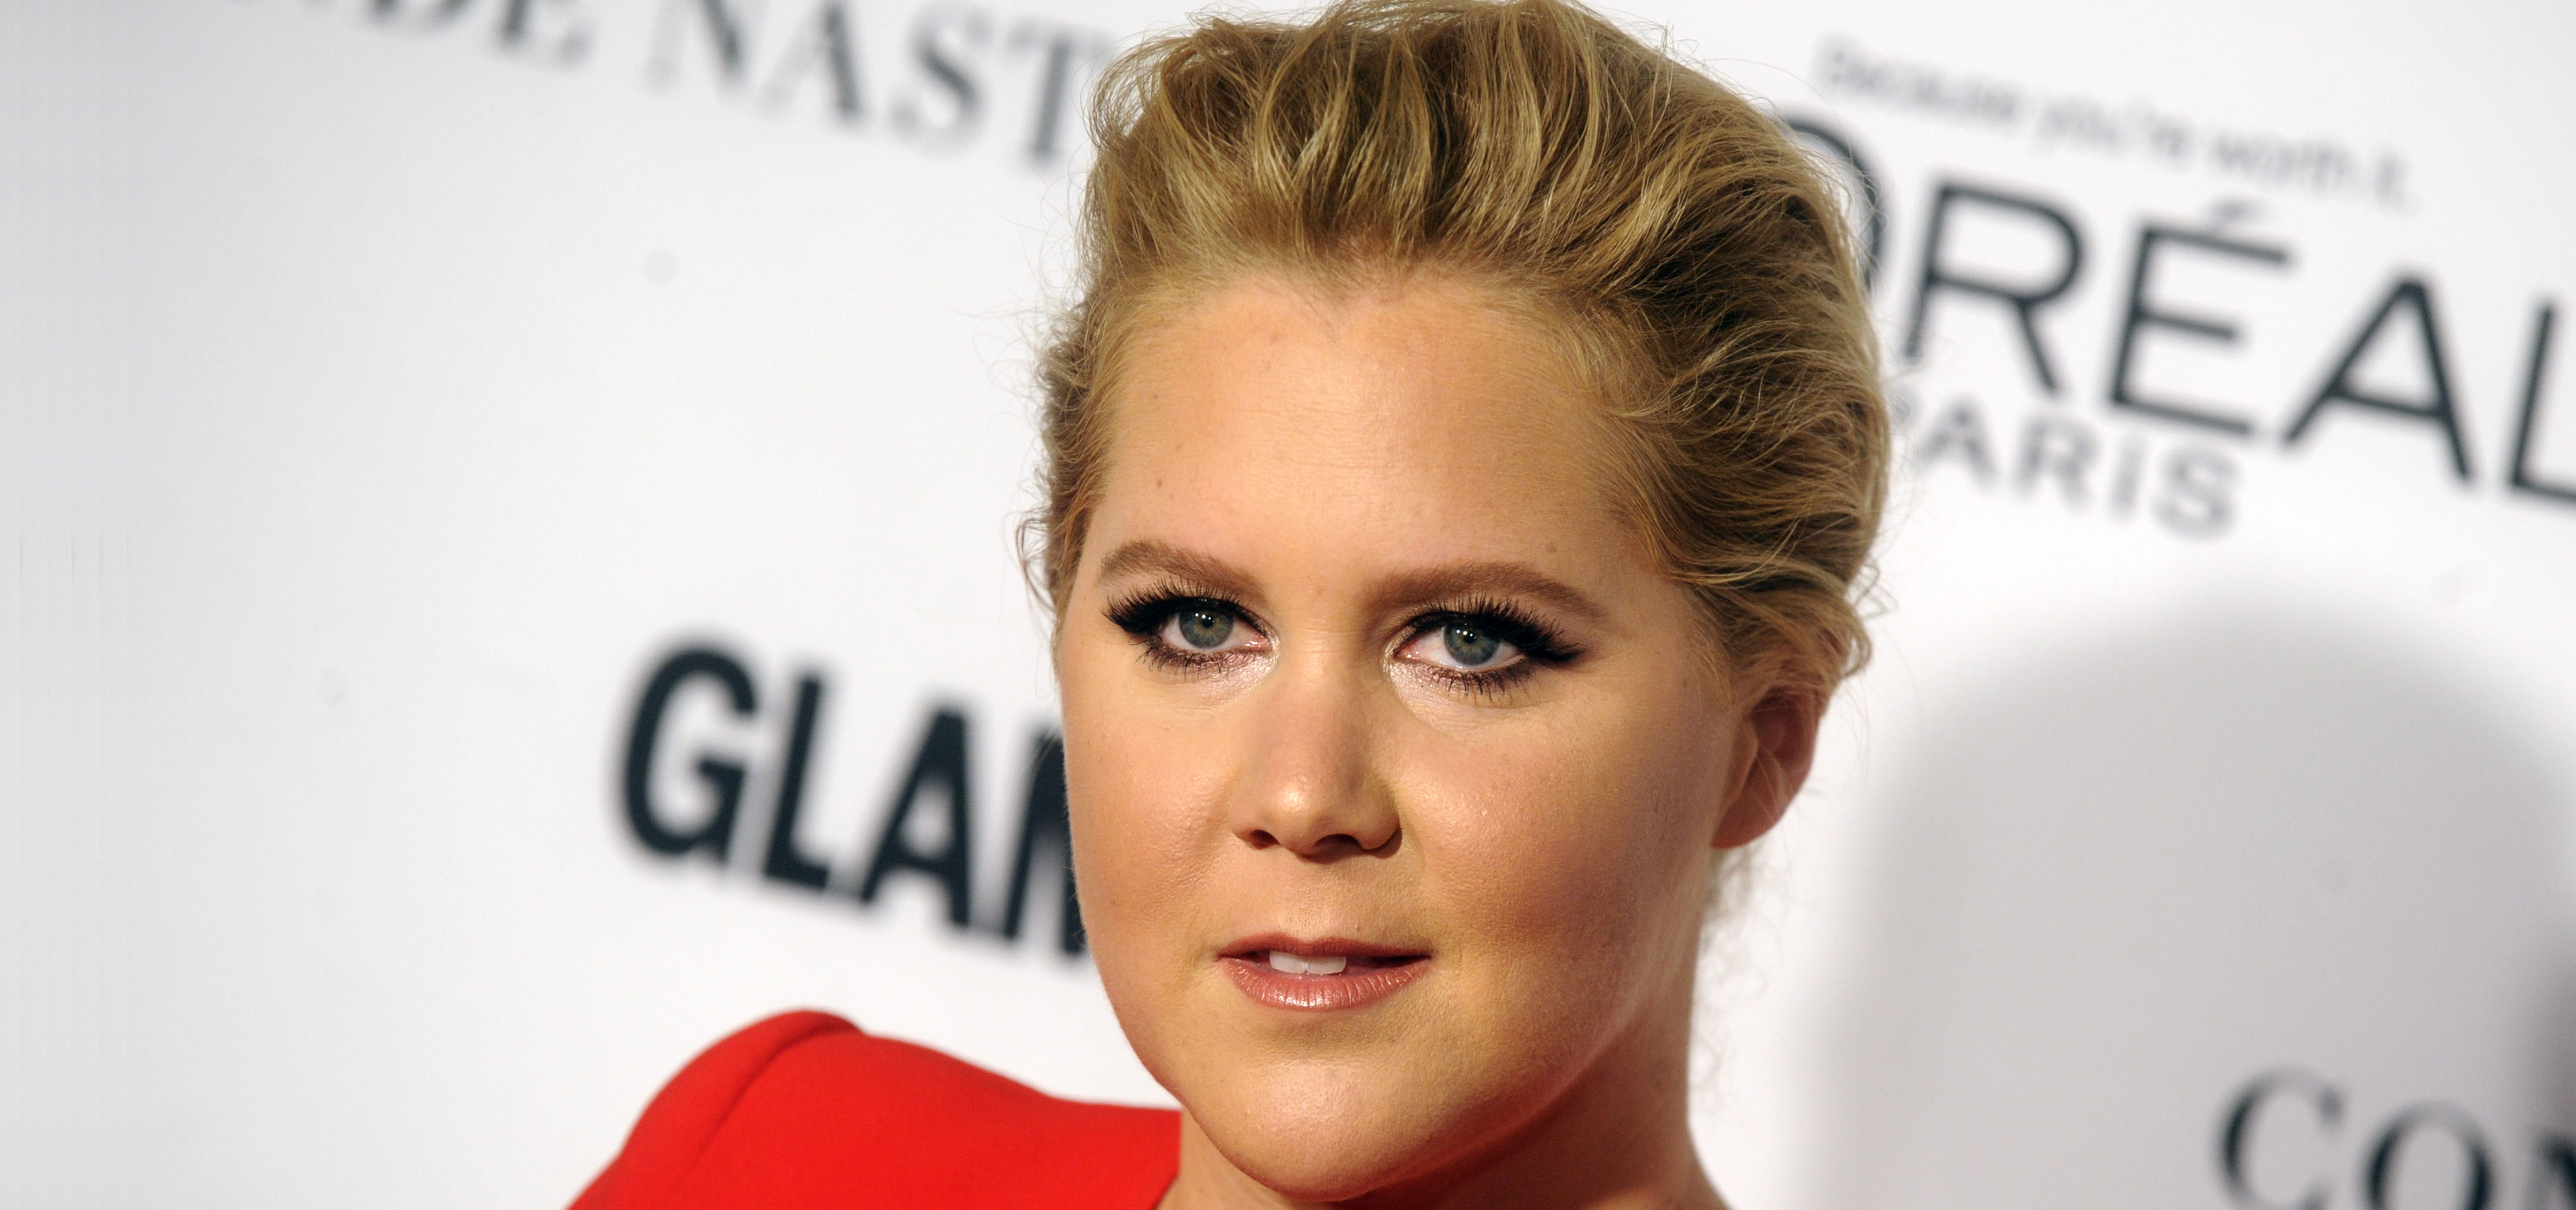 Did Amy Schumer throw a 'massive fit' at a gym or get mad at bad service? (update)